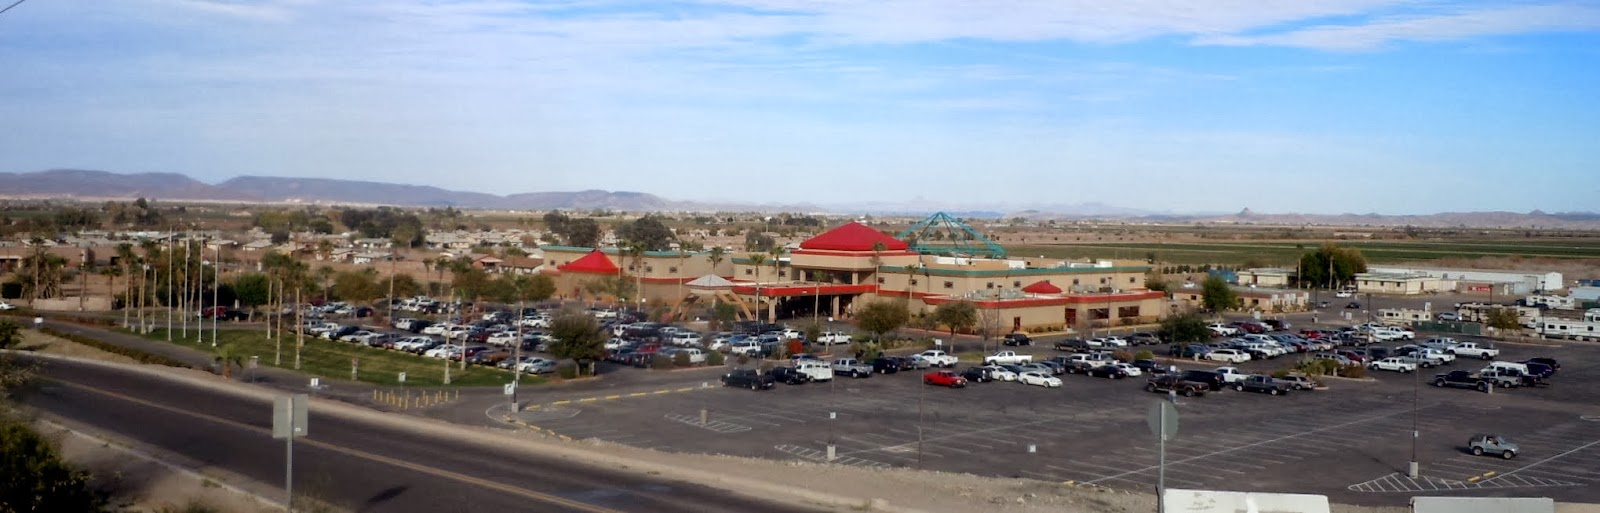 algodones dating site Welcome to this guide to the strip clubs and brothels in los algodones,  strip clubs & brothels in los algodones,  the top asian online dating site in the world.